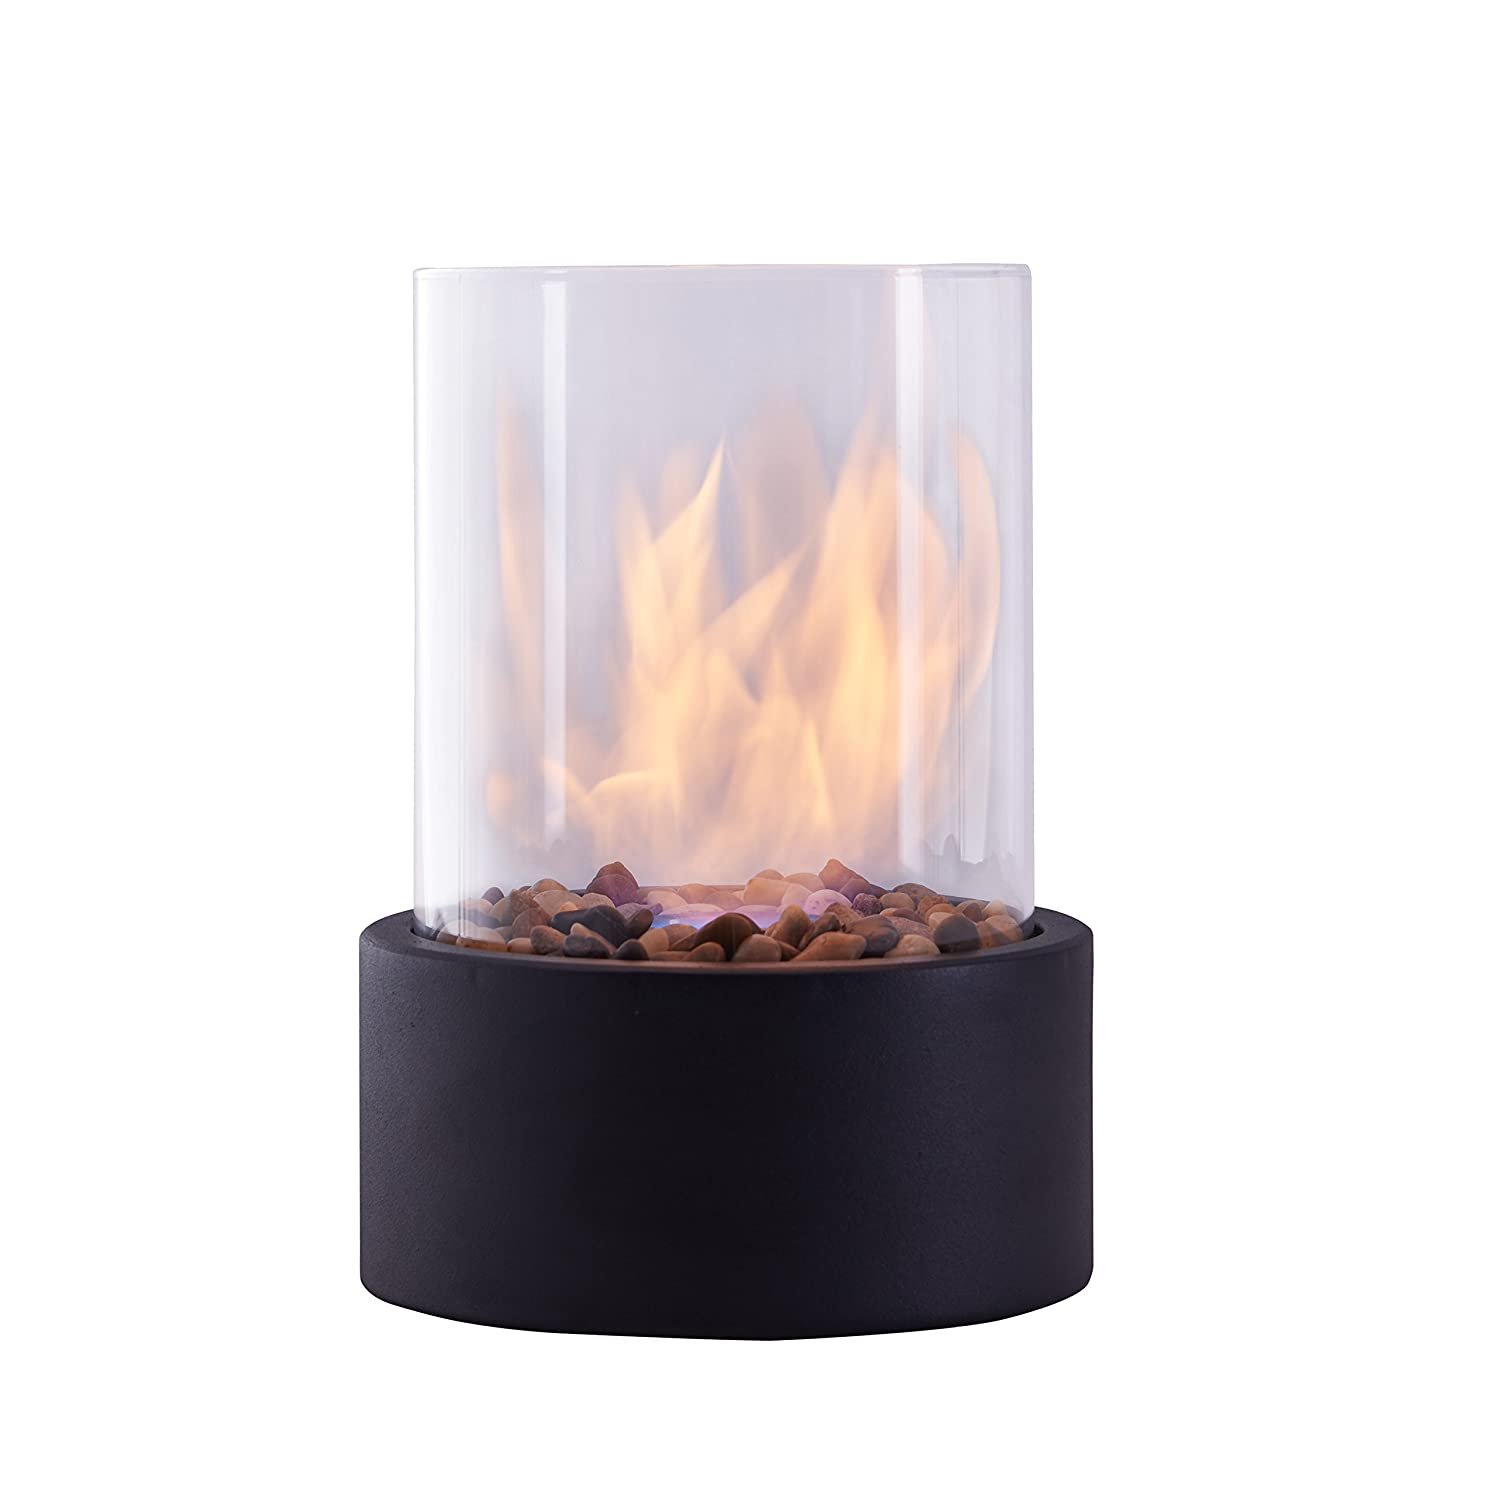 Danya B. Indoor/Outdoor Portable Tabletop Fire Pit – Clean-Burning Bio Ethanol Ventless Fireplace - Small